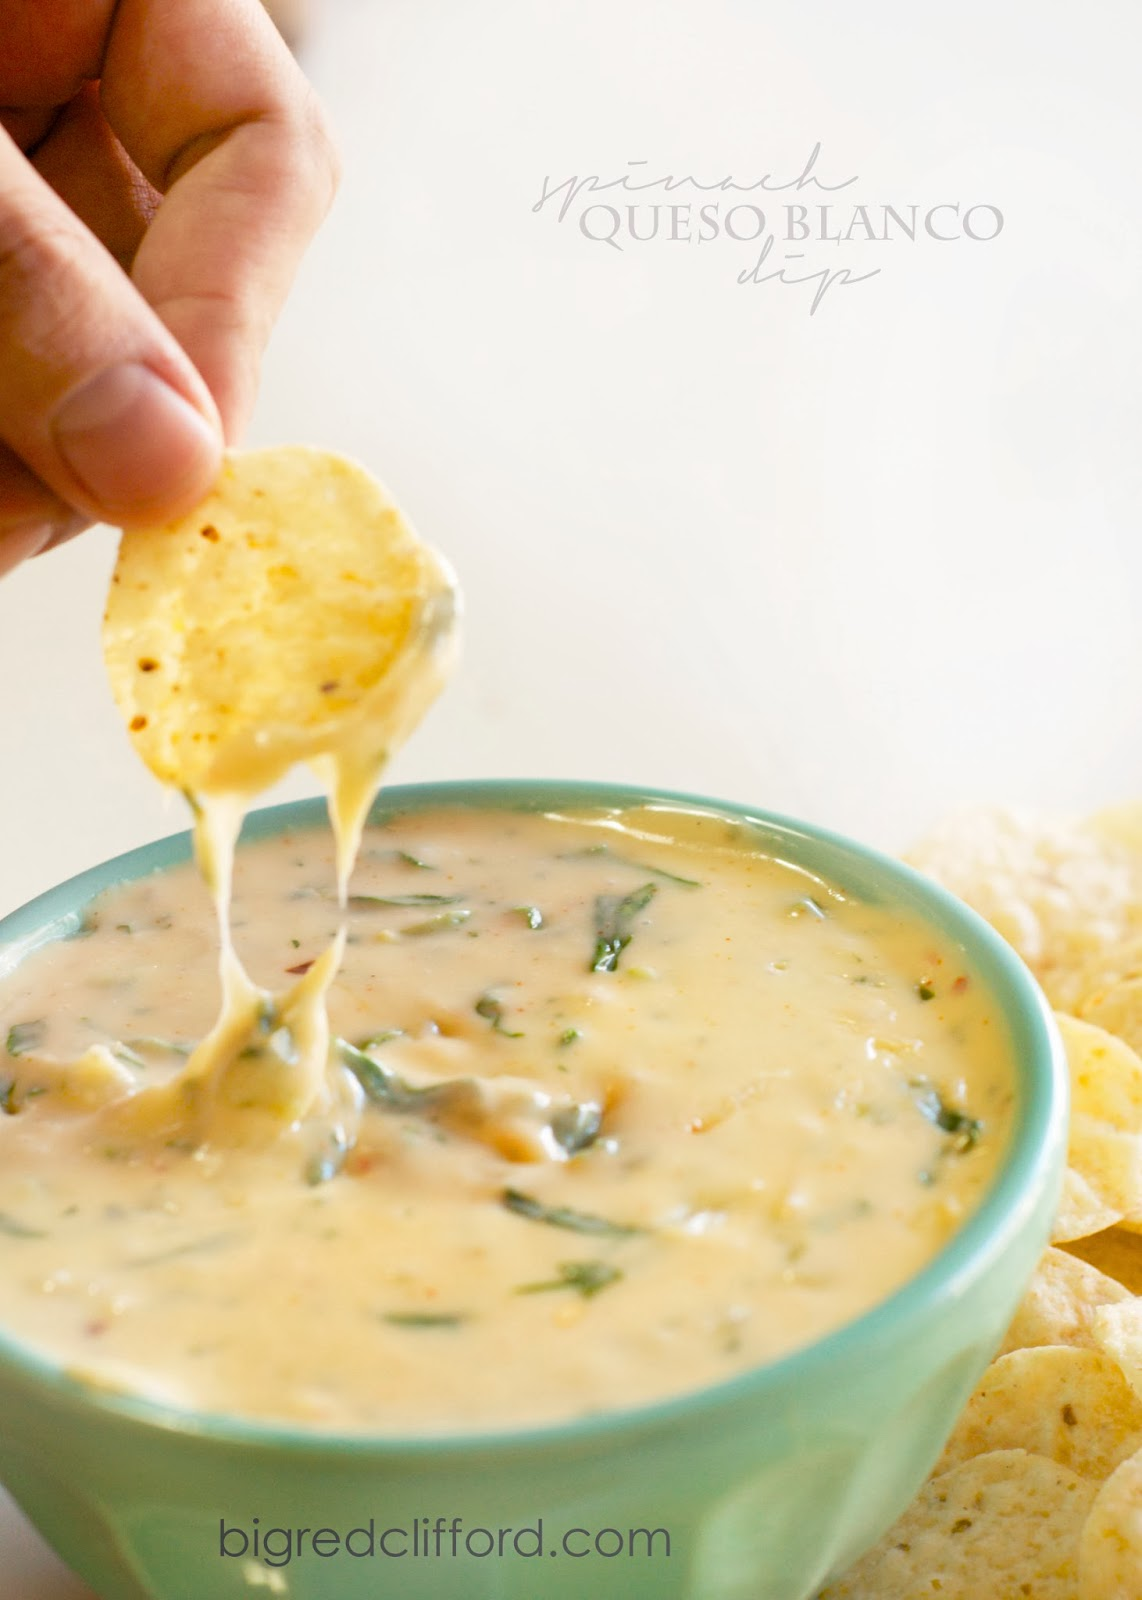 http://www.bigredclifford.com/2013/01/the-best-queso-blanco-dip-recipe.html?m=1